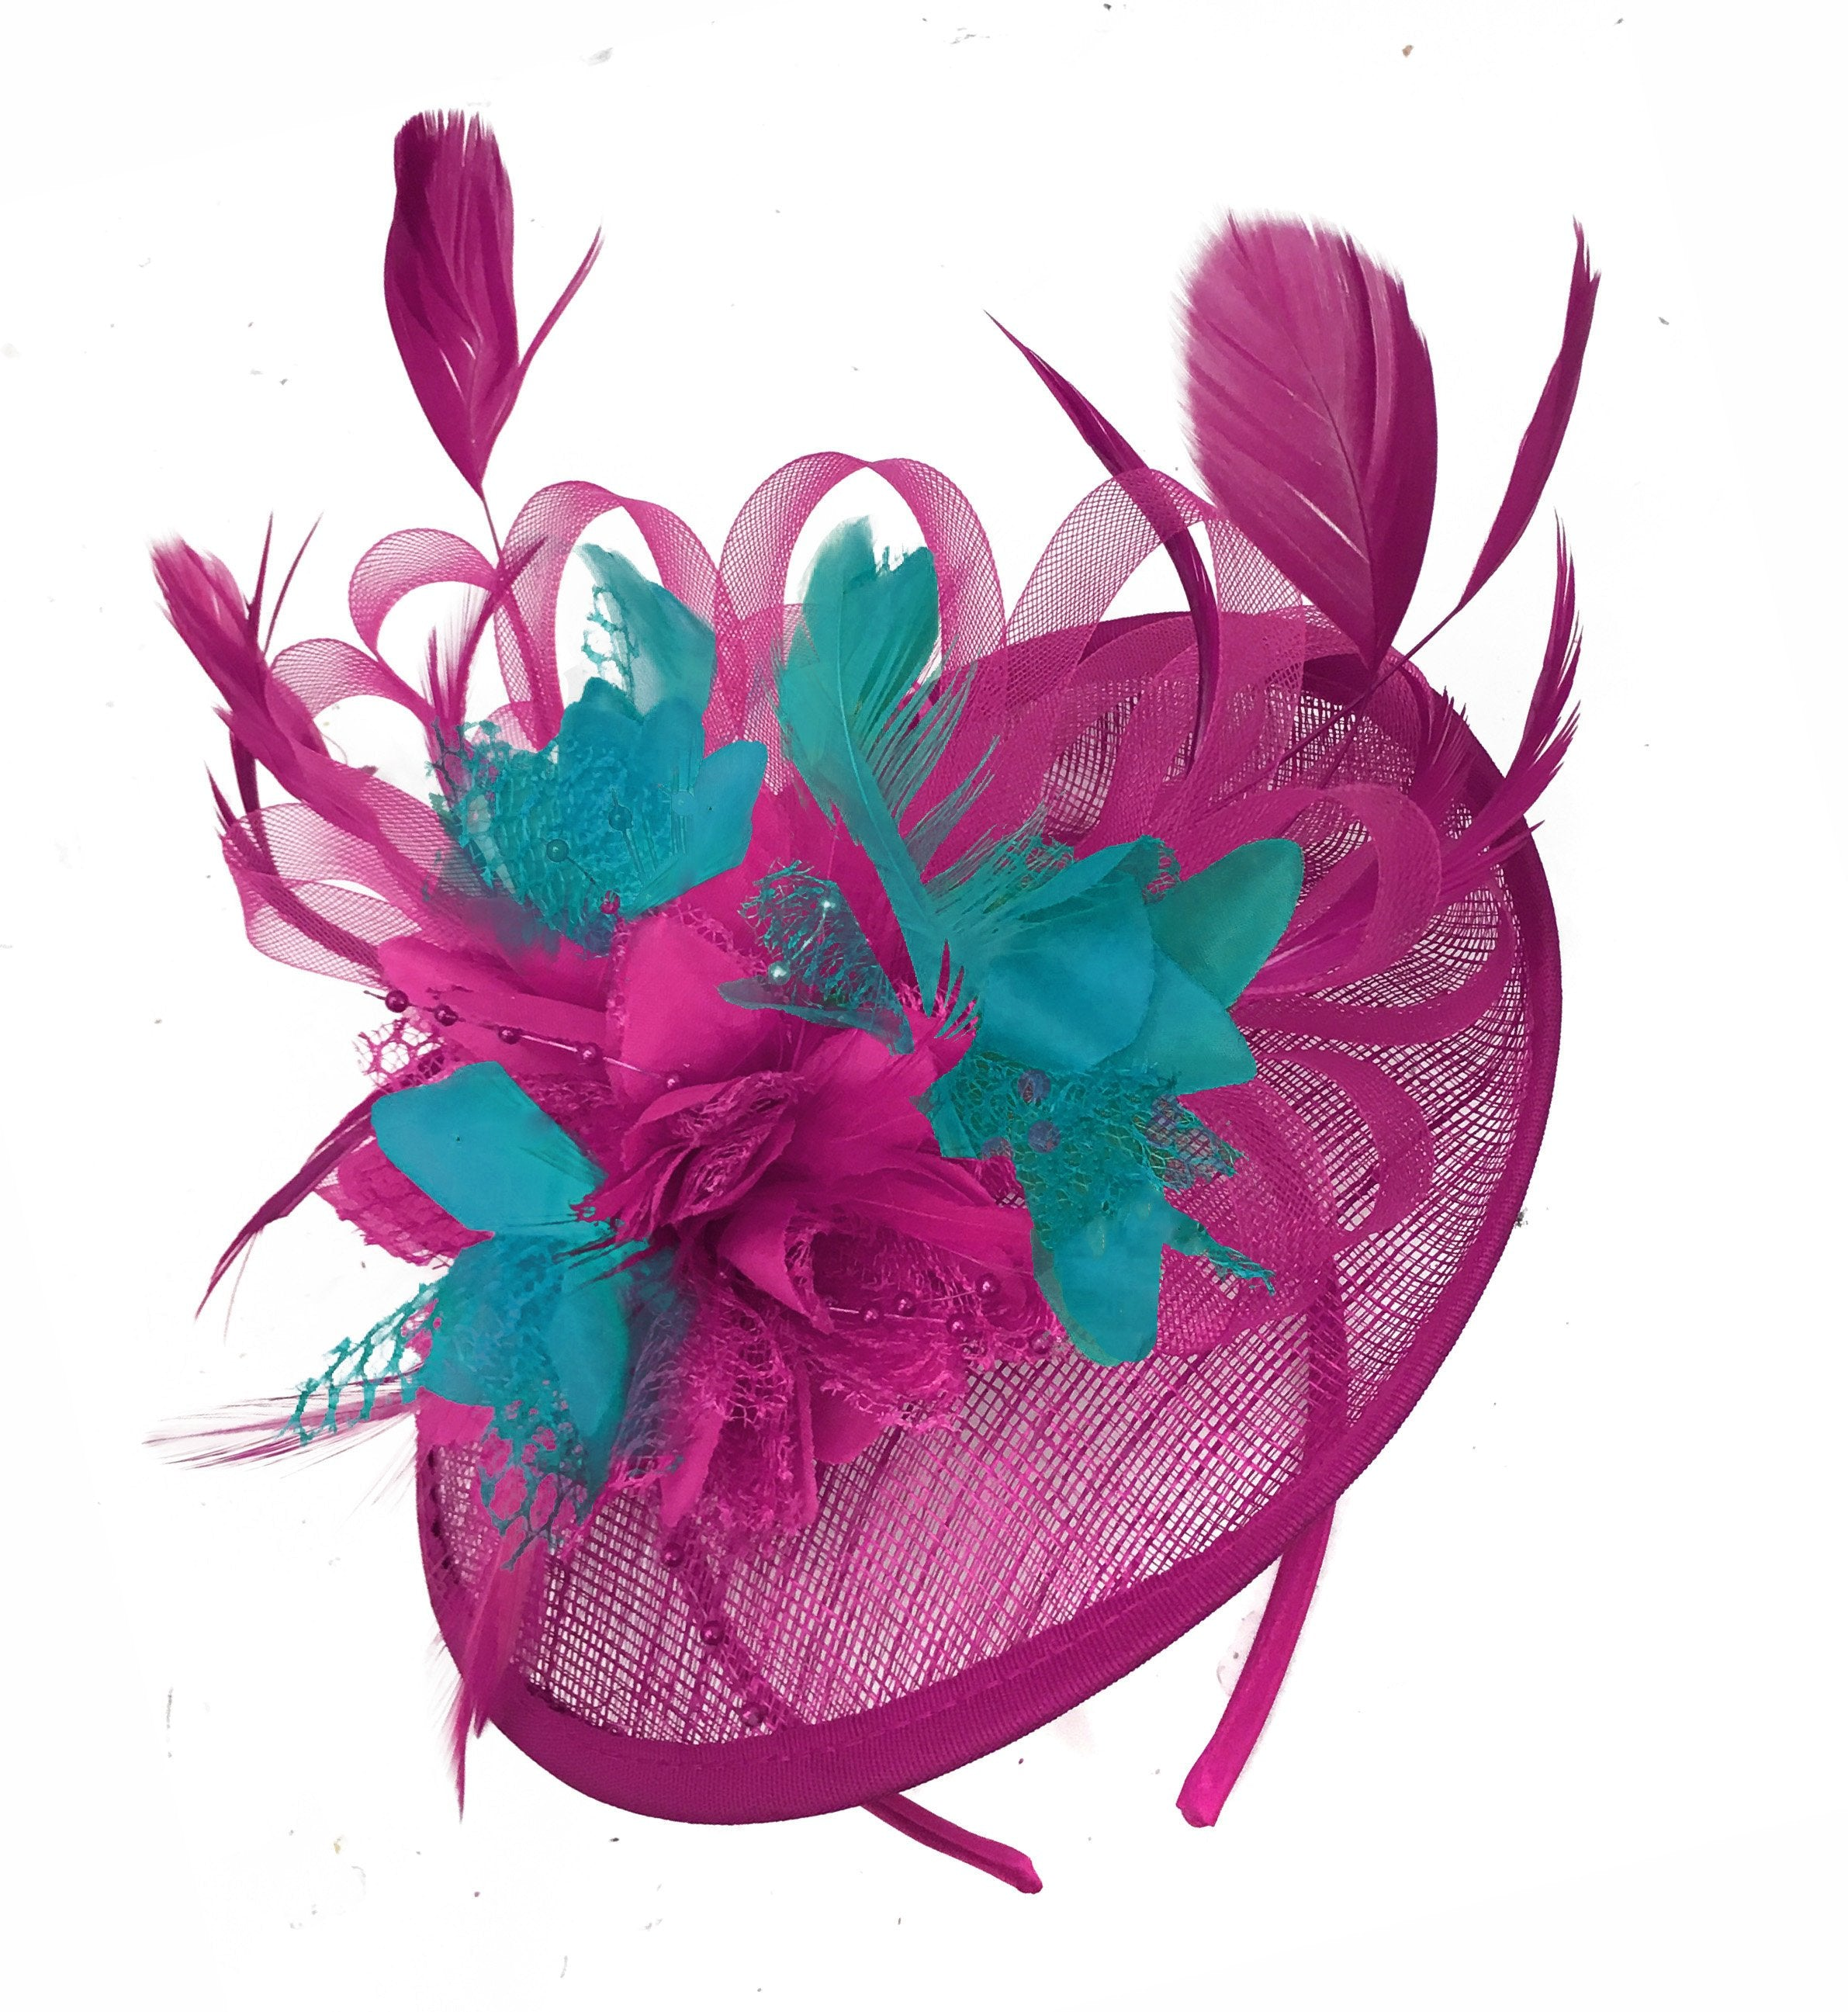 Caprilite Fuchsia Hot Pink and Teal Blue Sinamay Disc Saucer Fascinator Hat for Women Weddings Headband